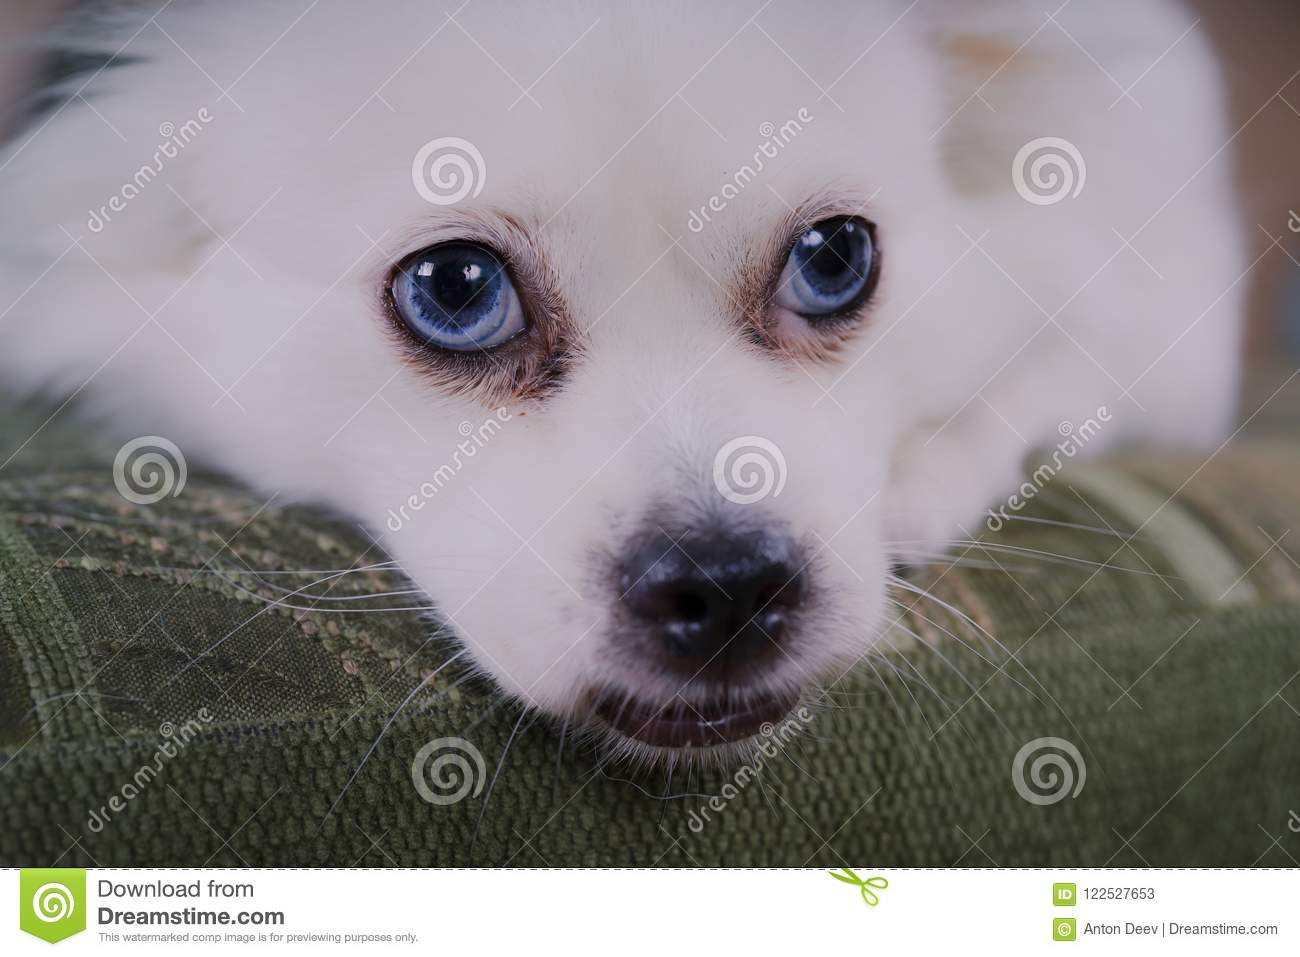 White fluffy dog lying on the couch and very wary looking to the side